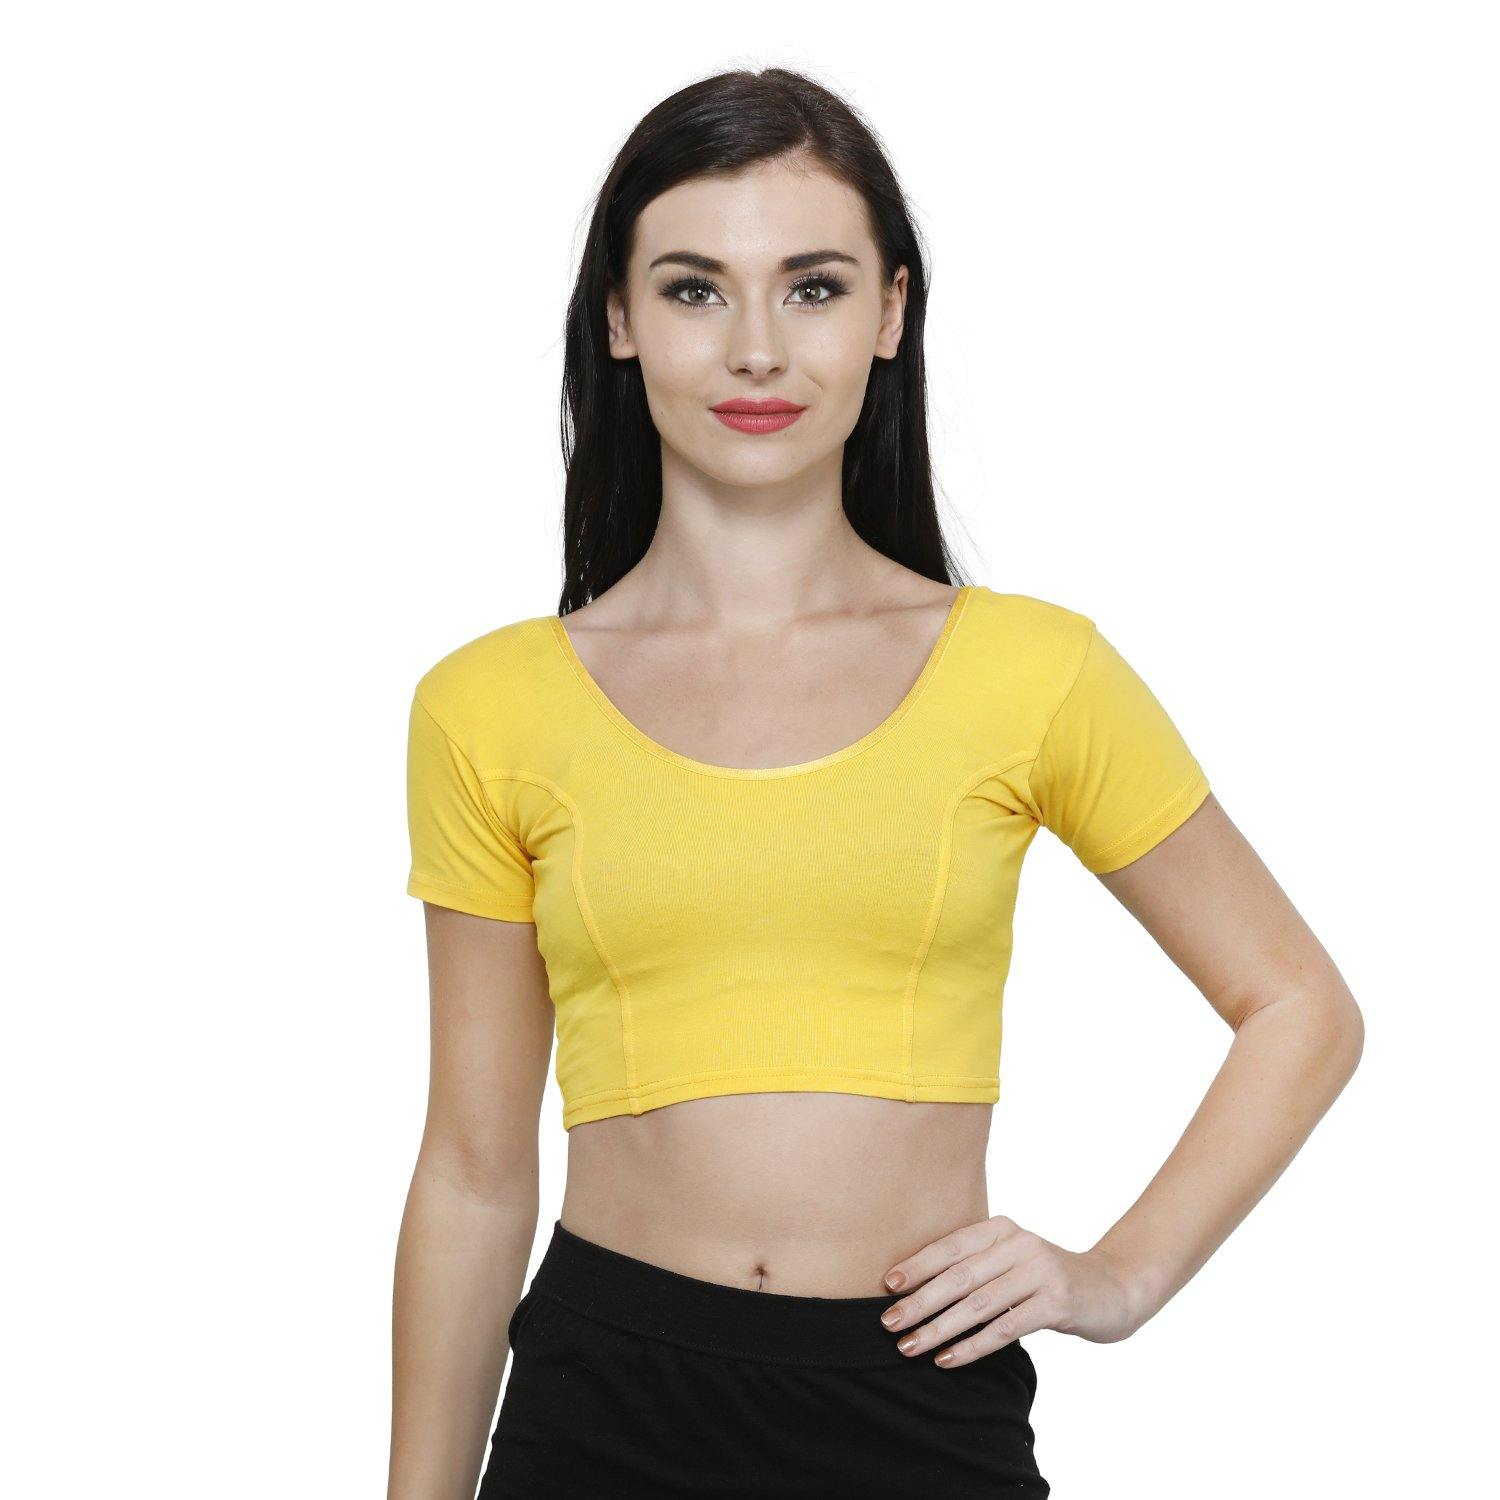 Vami Women's Cotton Stretchable Readymade Blouses - Sun Flower